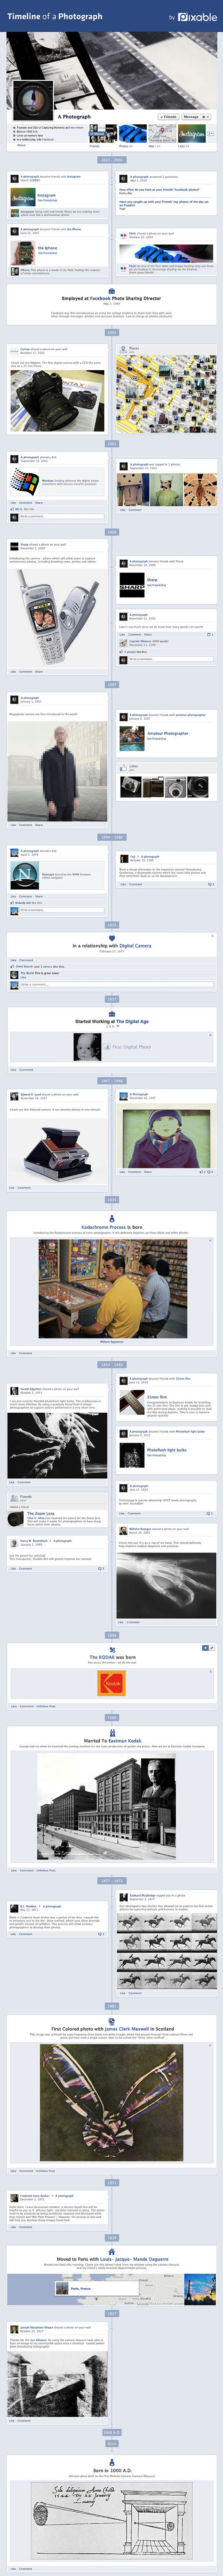 The History of the Photograph in a Facebook Timeline